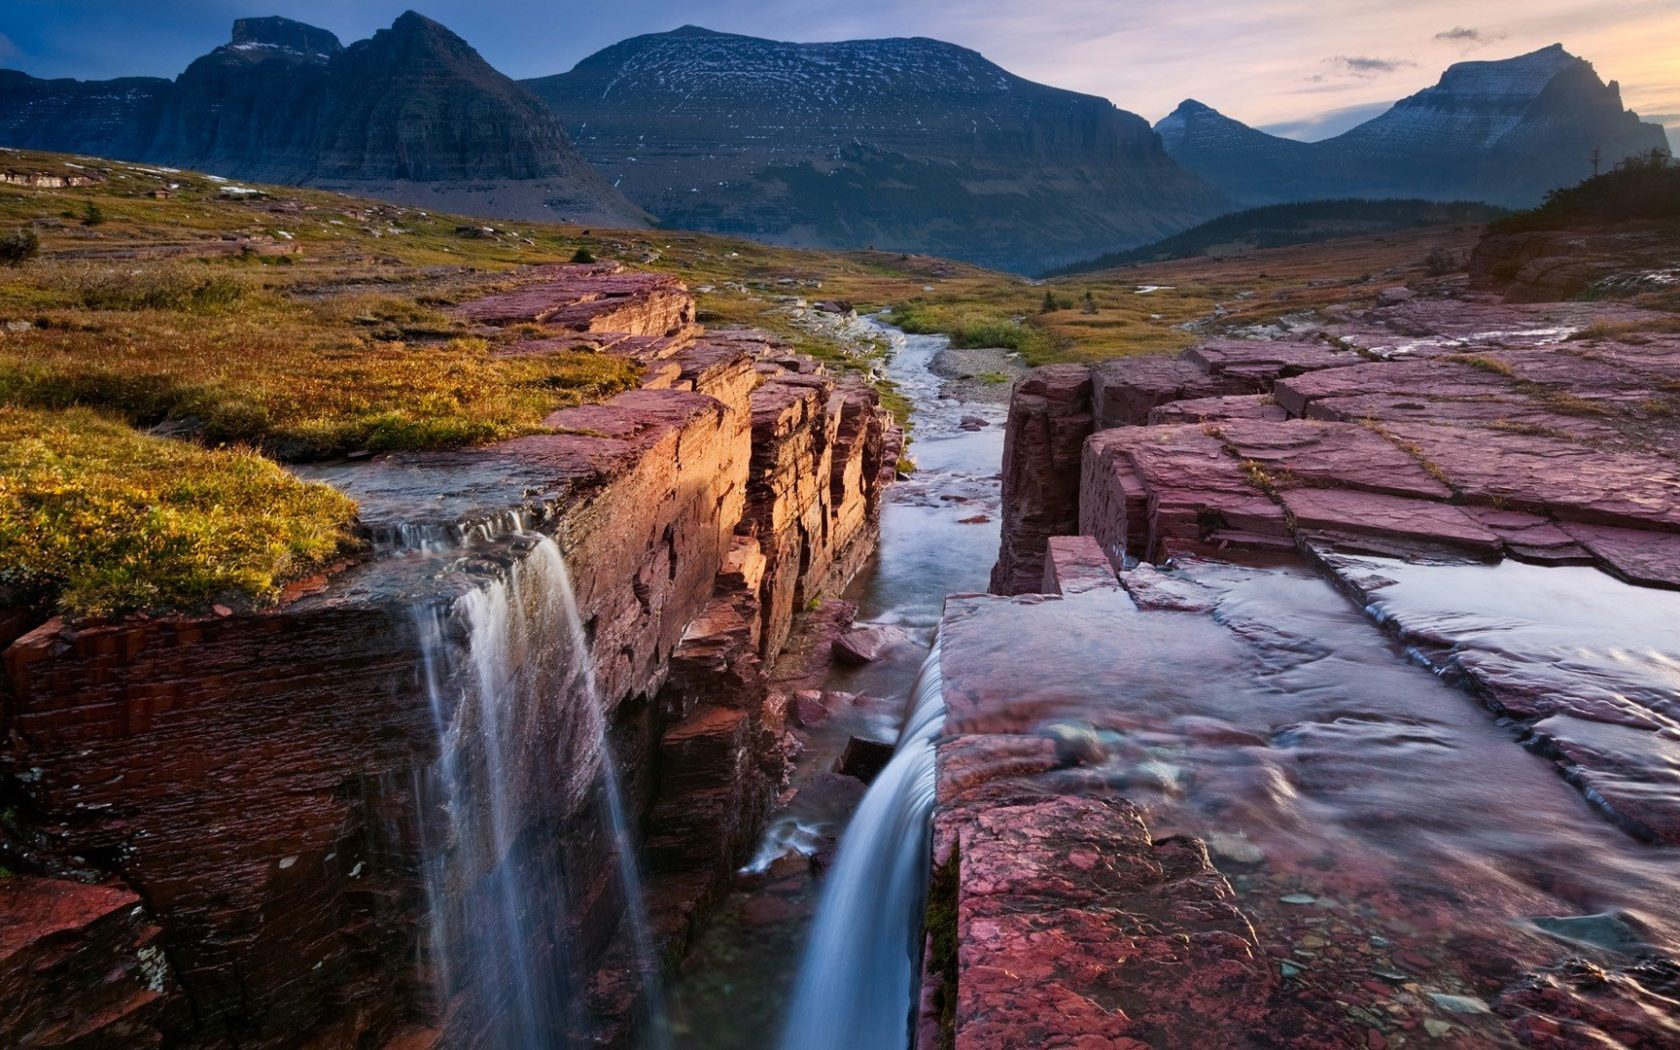 Hd Wallpapers For Laptop 15 6 Inch Screen Glacier National Park Montana Triple Falls Coast Red Rock